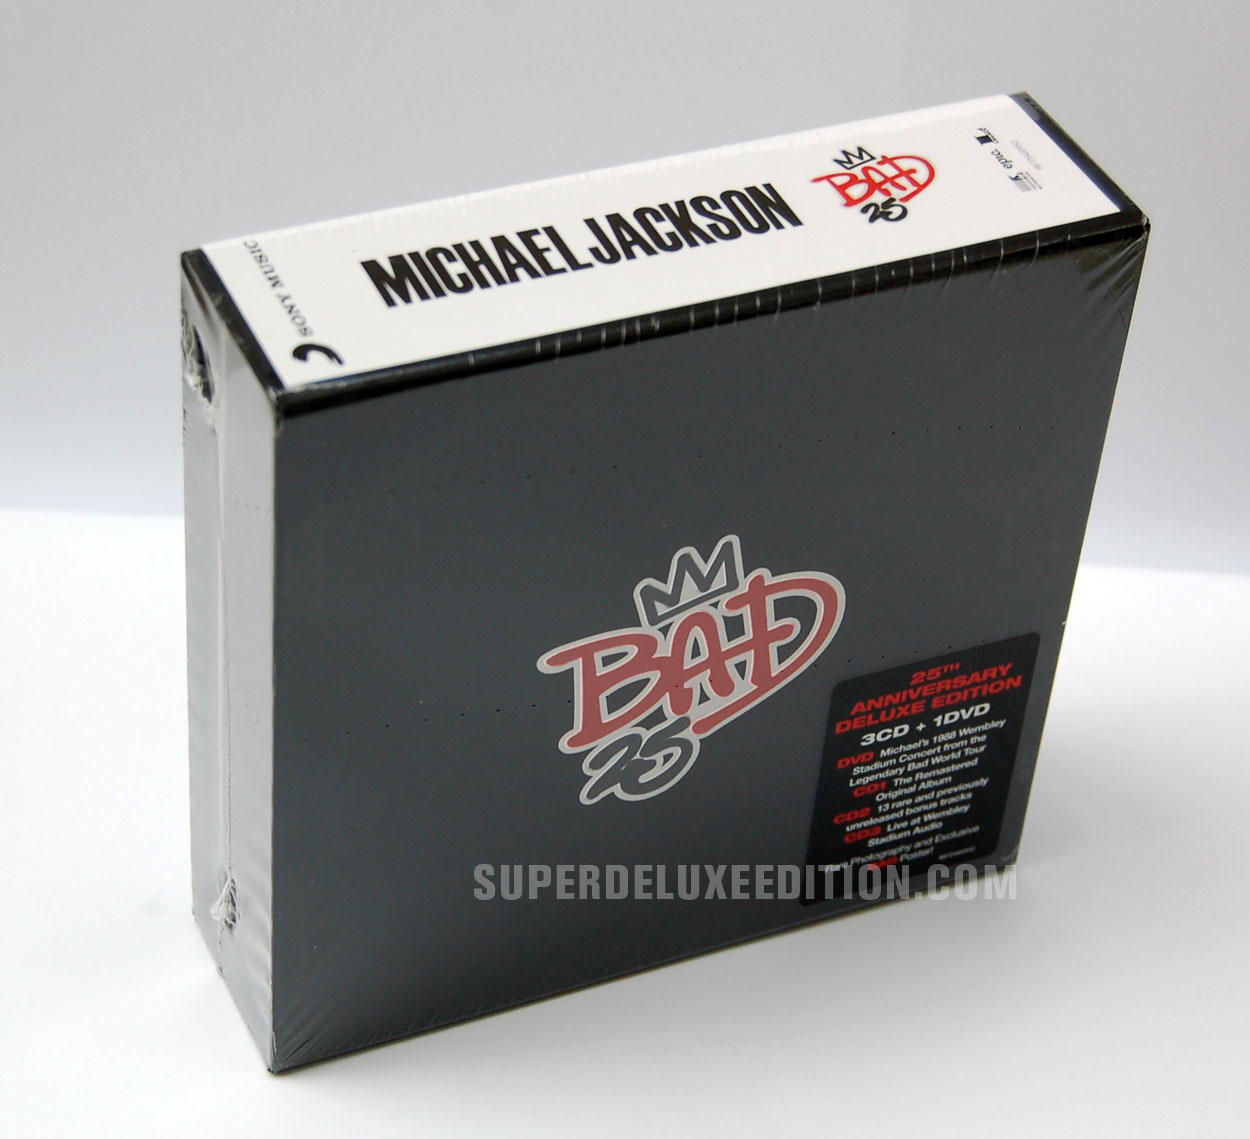 FIRST PICTURES: Michael Jackson's Bad 25 Deluxe Box Set